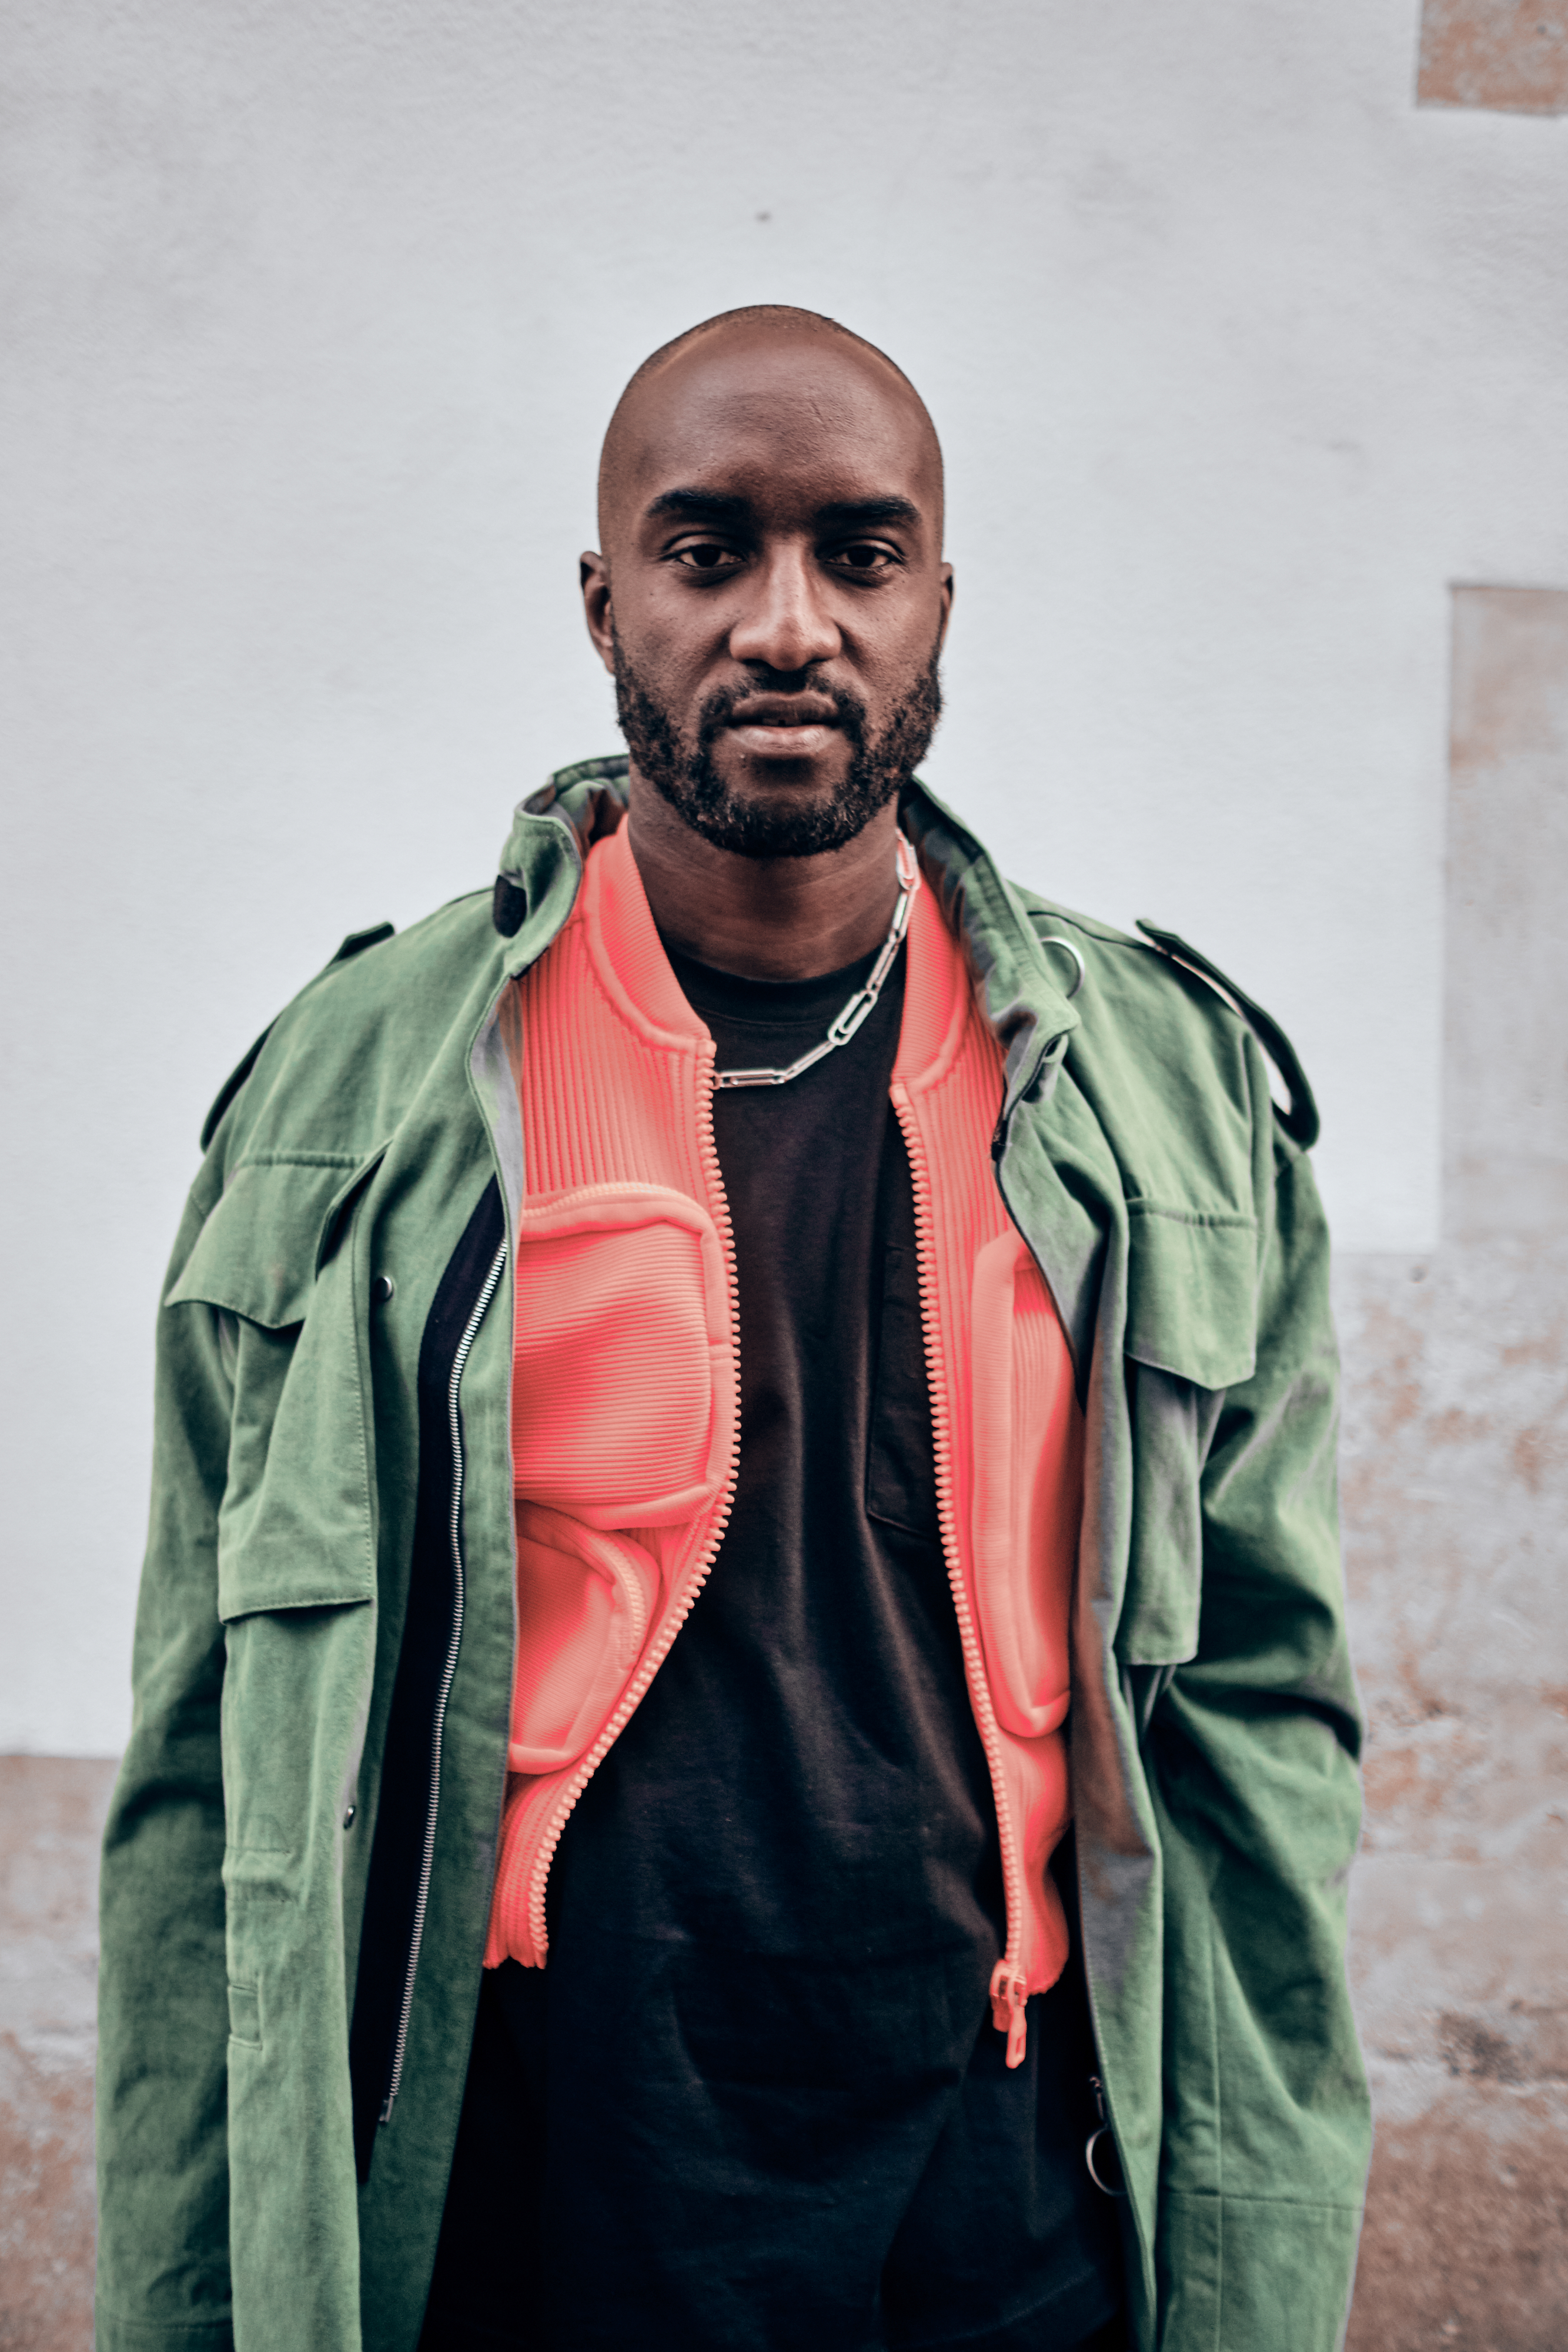 2483bd388df1d0 Virgil Abloh - Wikipedia